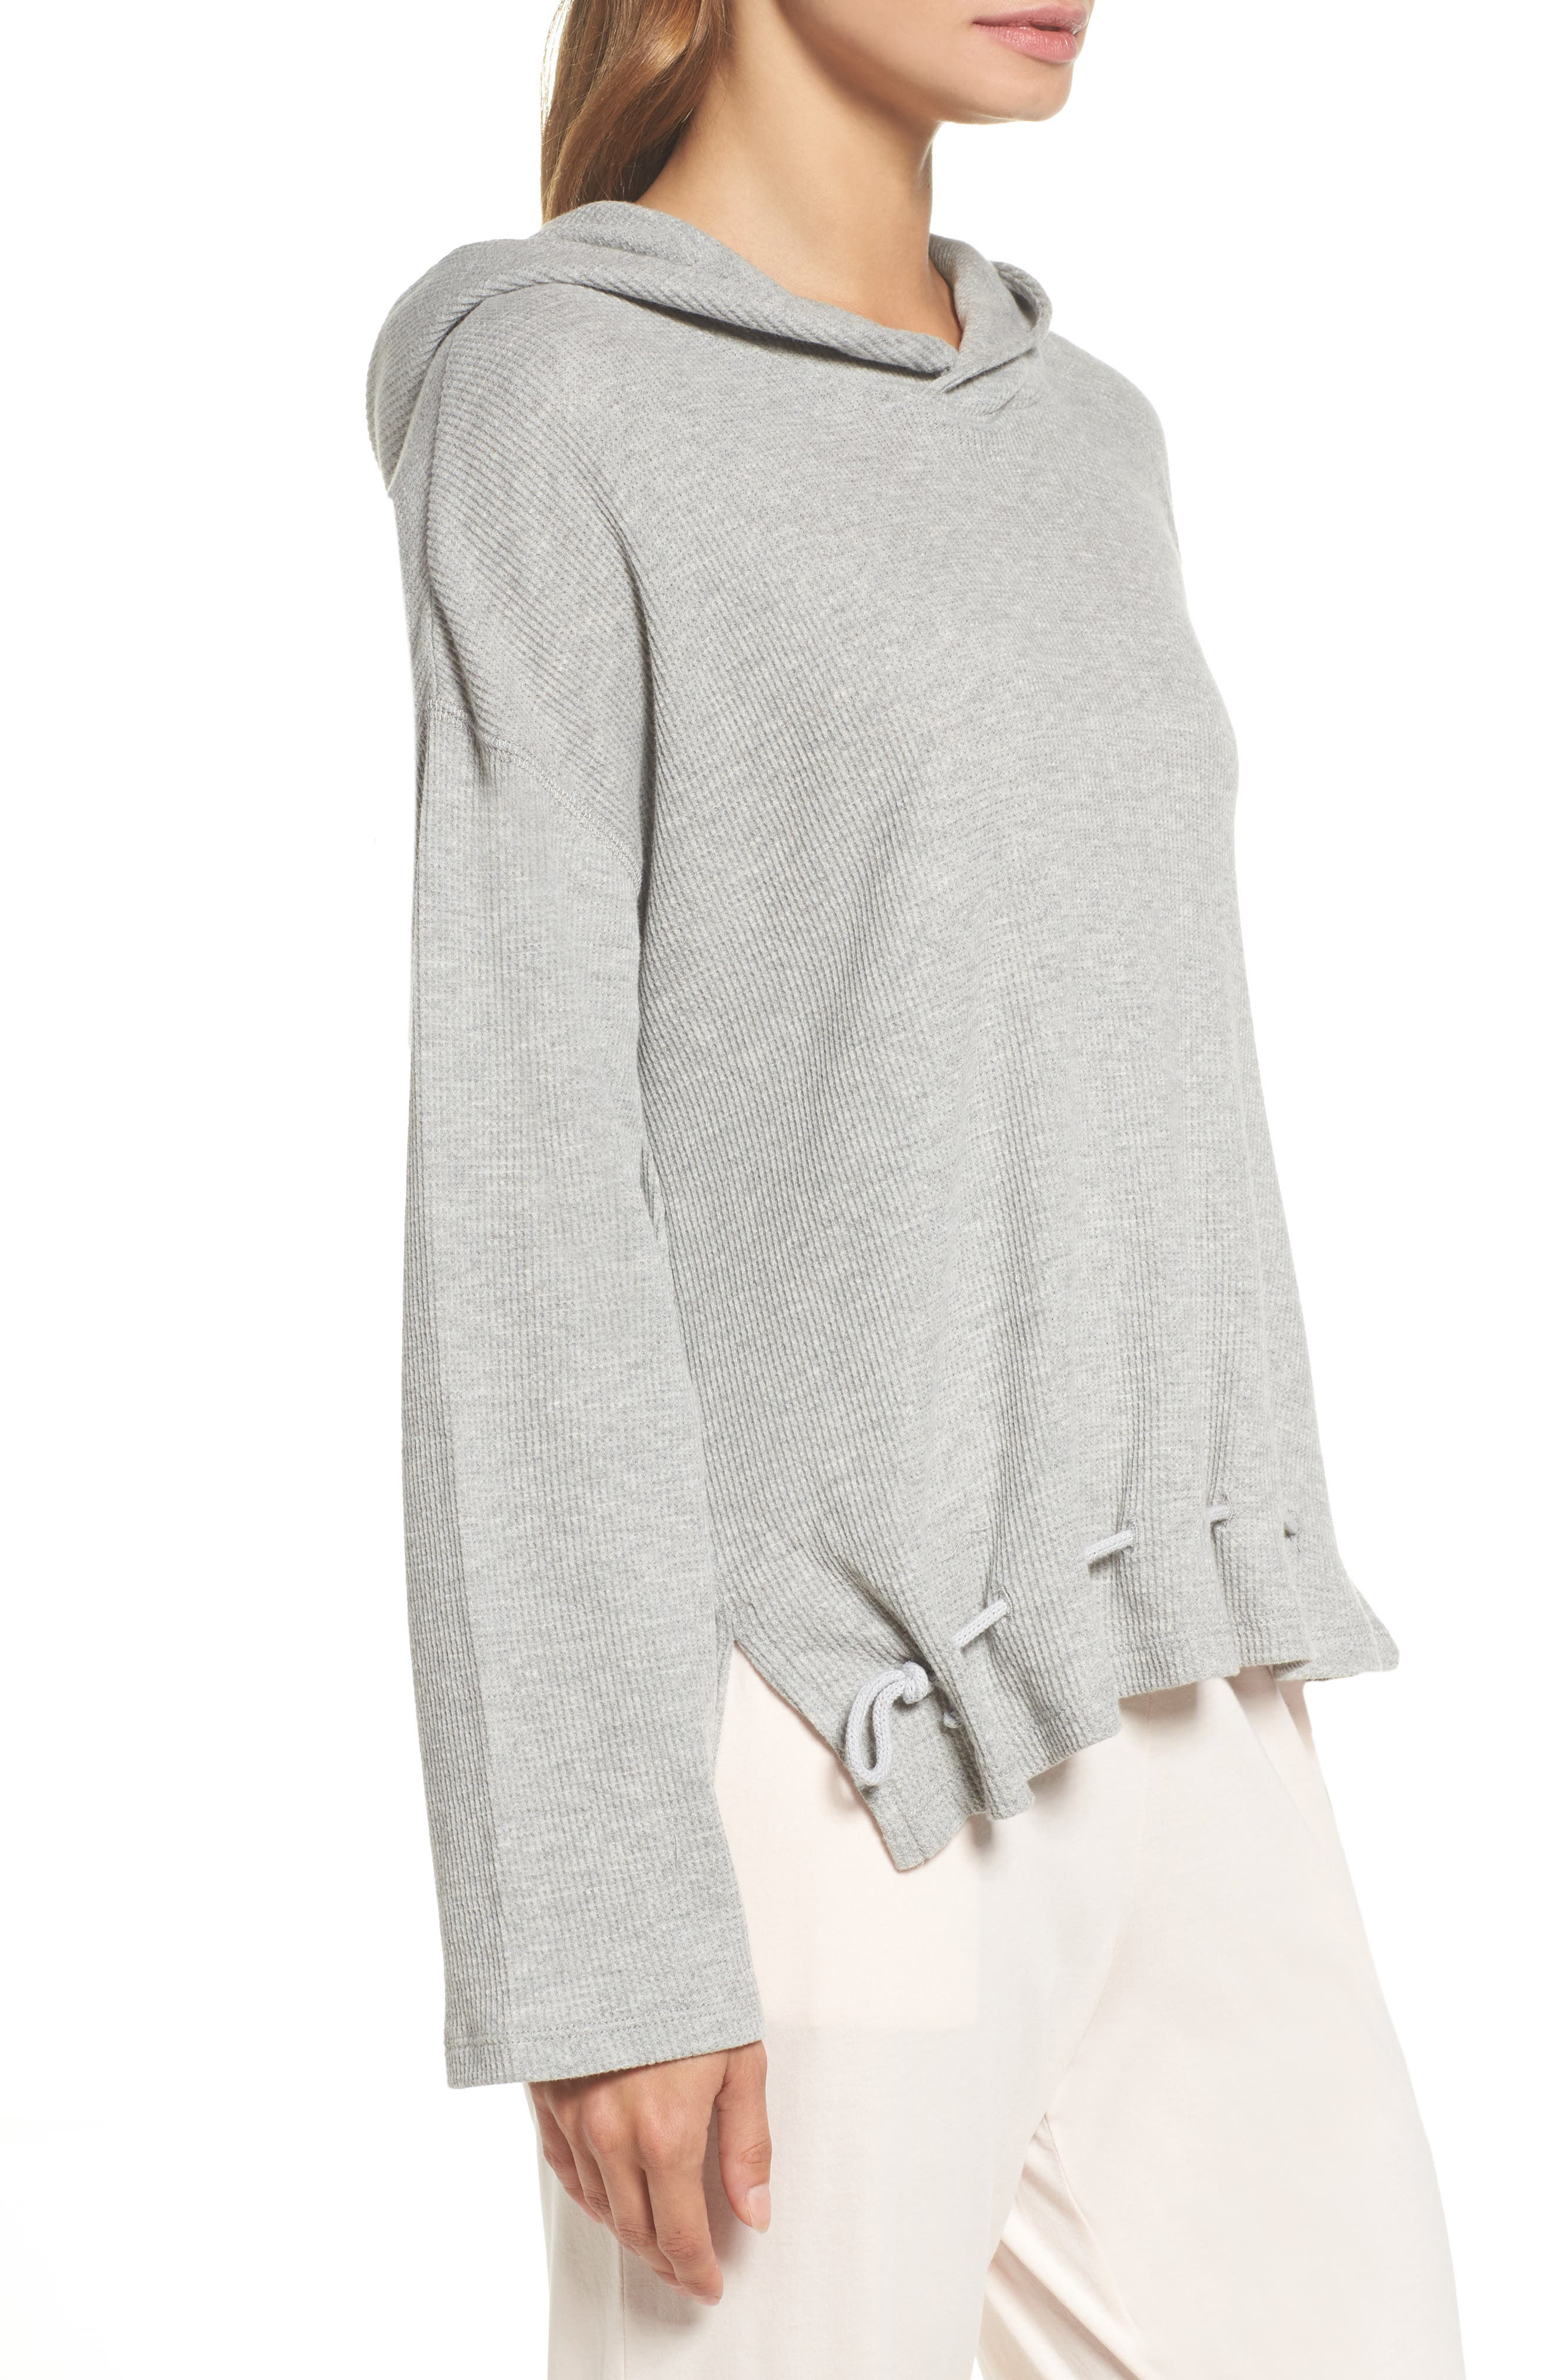 Thermal Hooded Top,                             Alternate thumbnail 3, color,                             Heather Grey